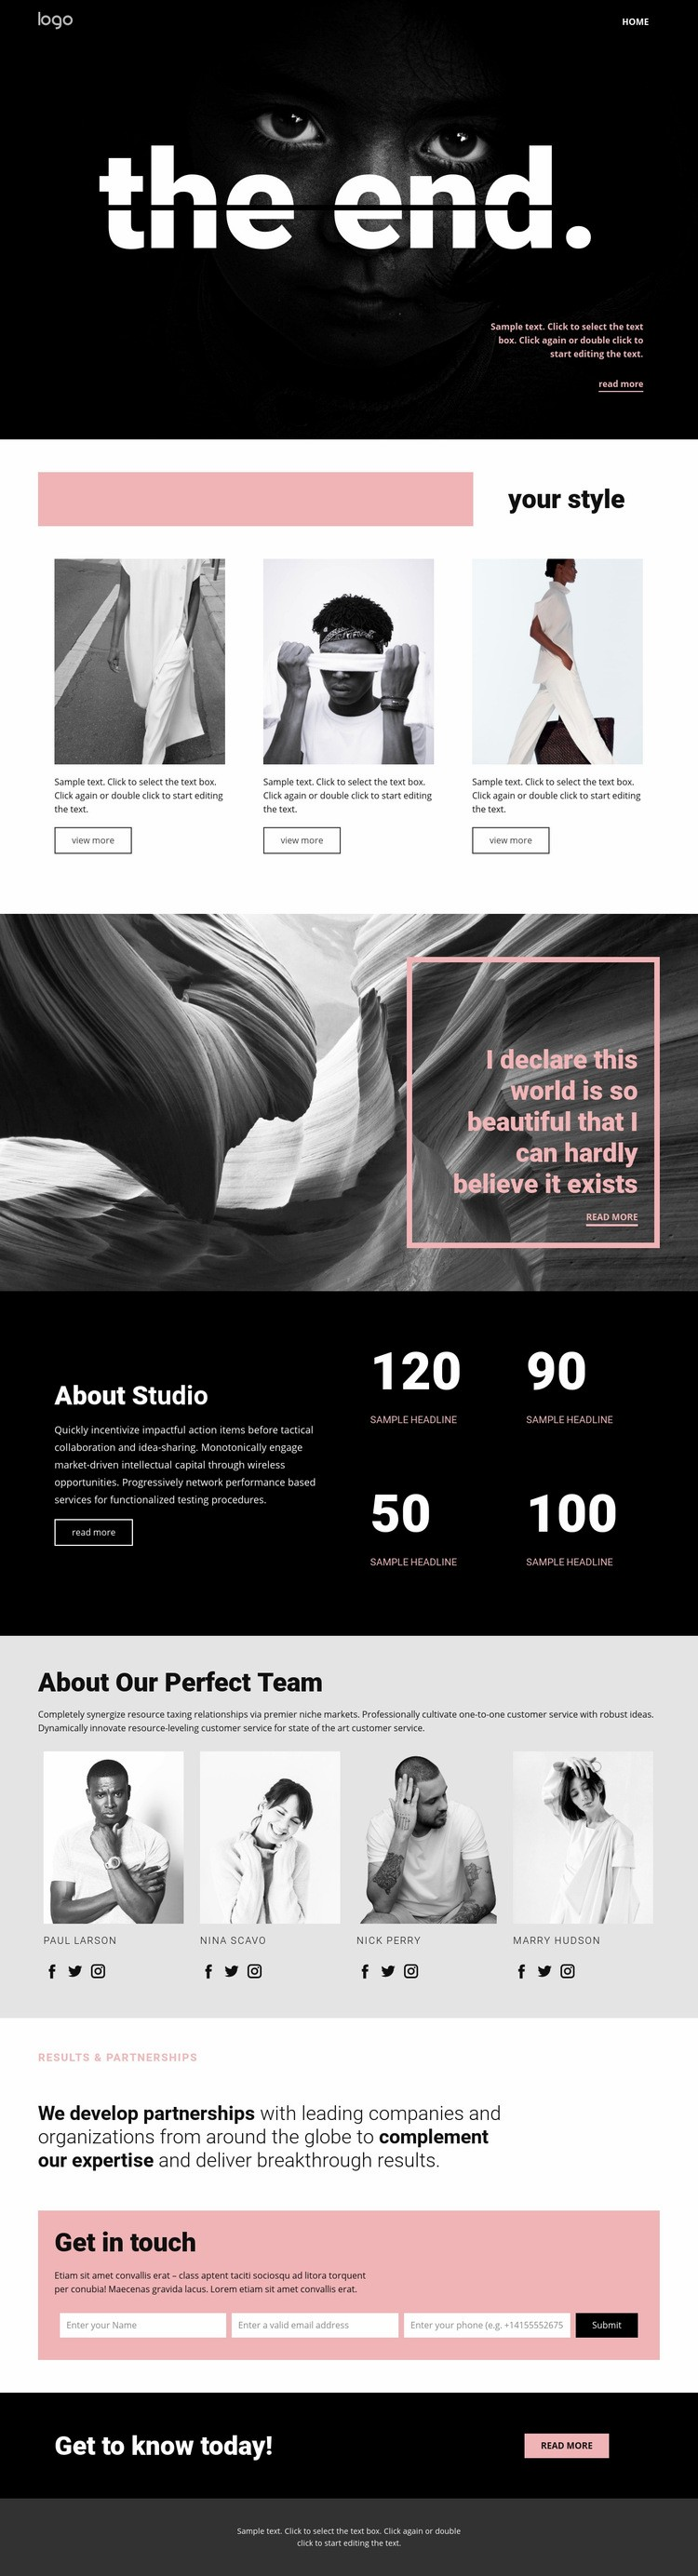 Perfecting styles of art Html Code Example